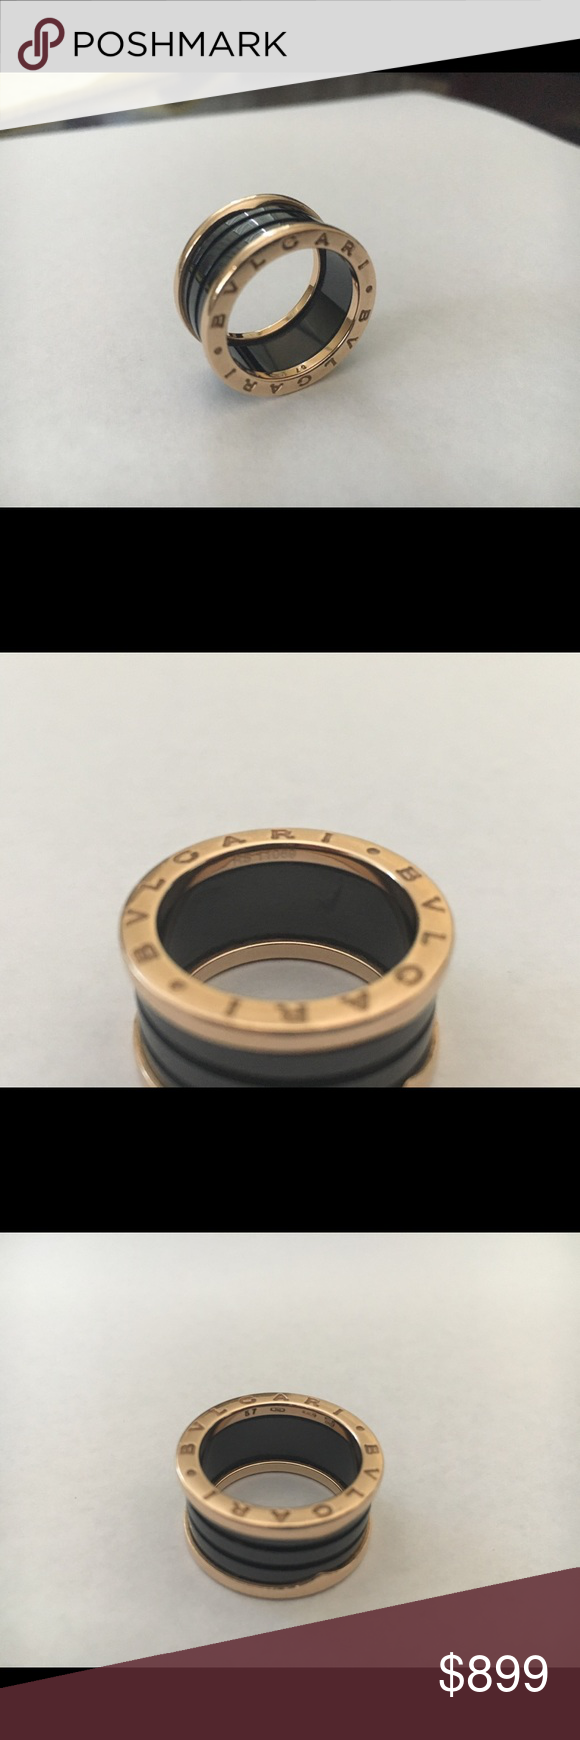 bvlgari zero1 ring 18k rose gold size 57 us 8 preowned authentic